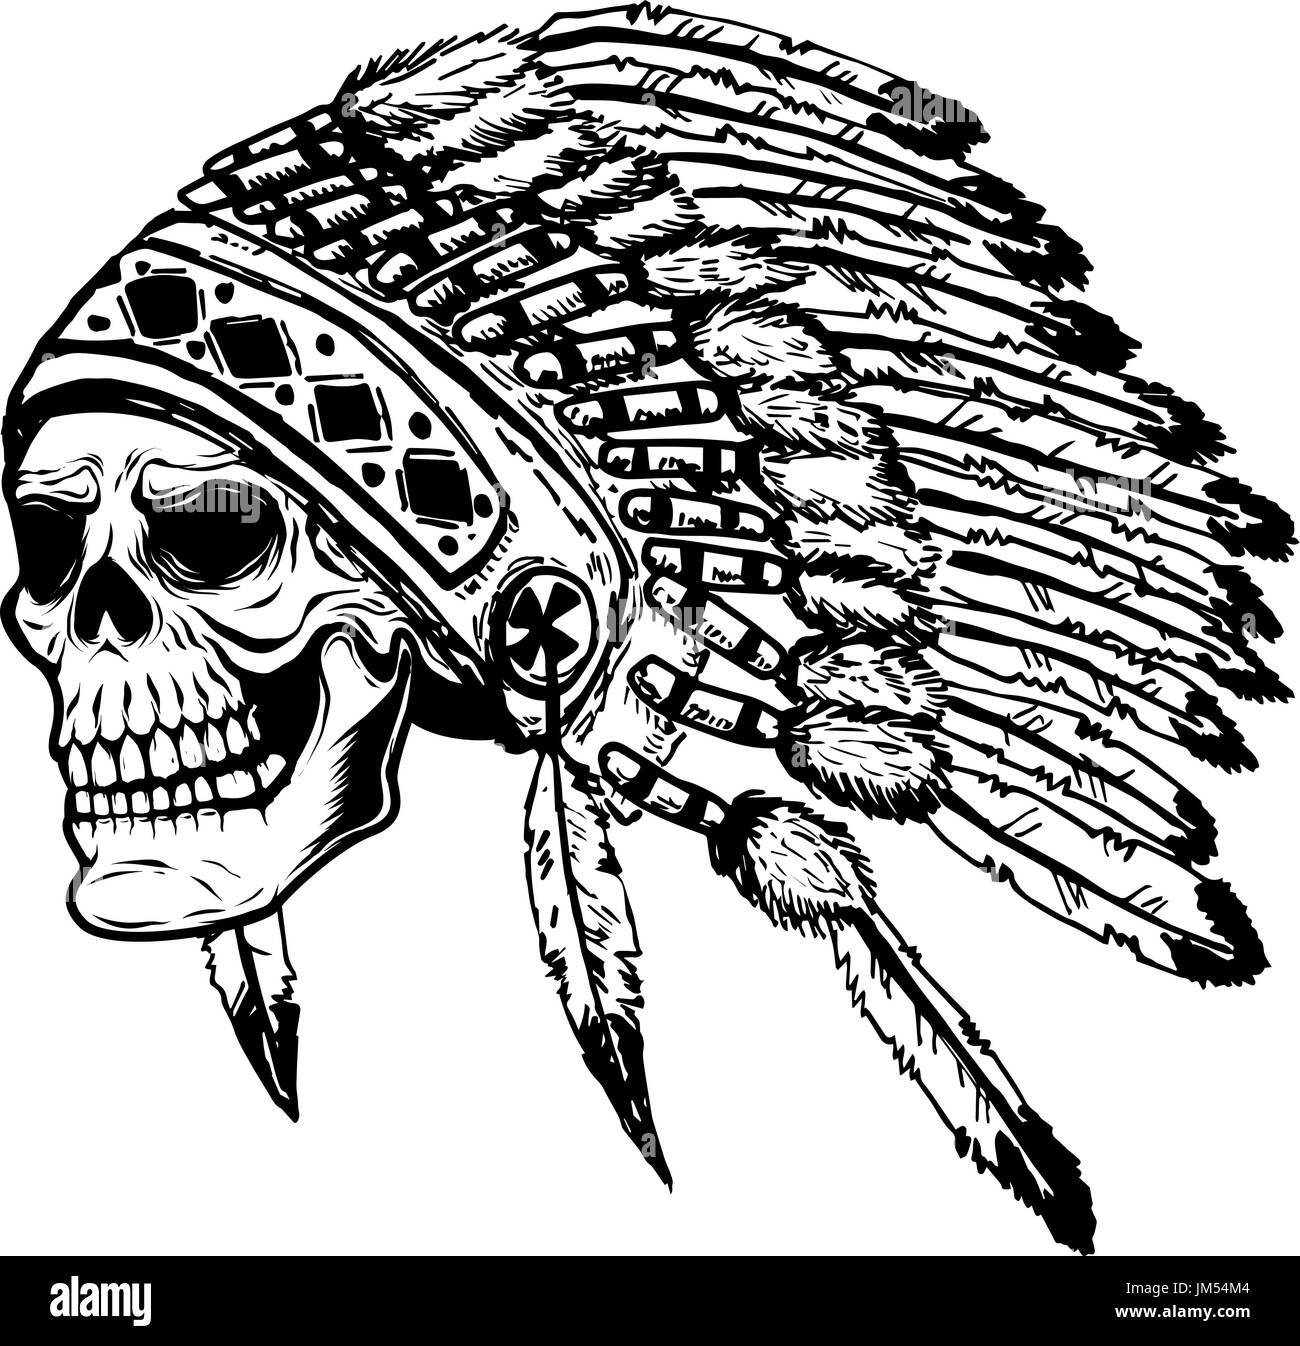 skull in native american indian chief headdress. Design element for poster, t-shirt. Vector illustration. - Stock Image